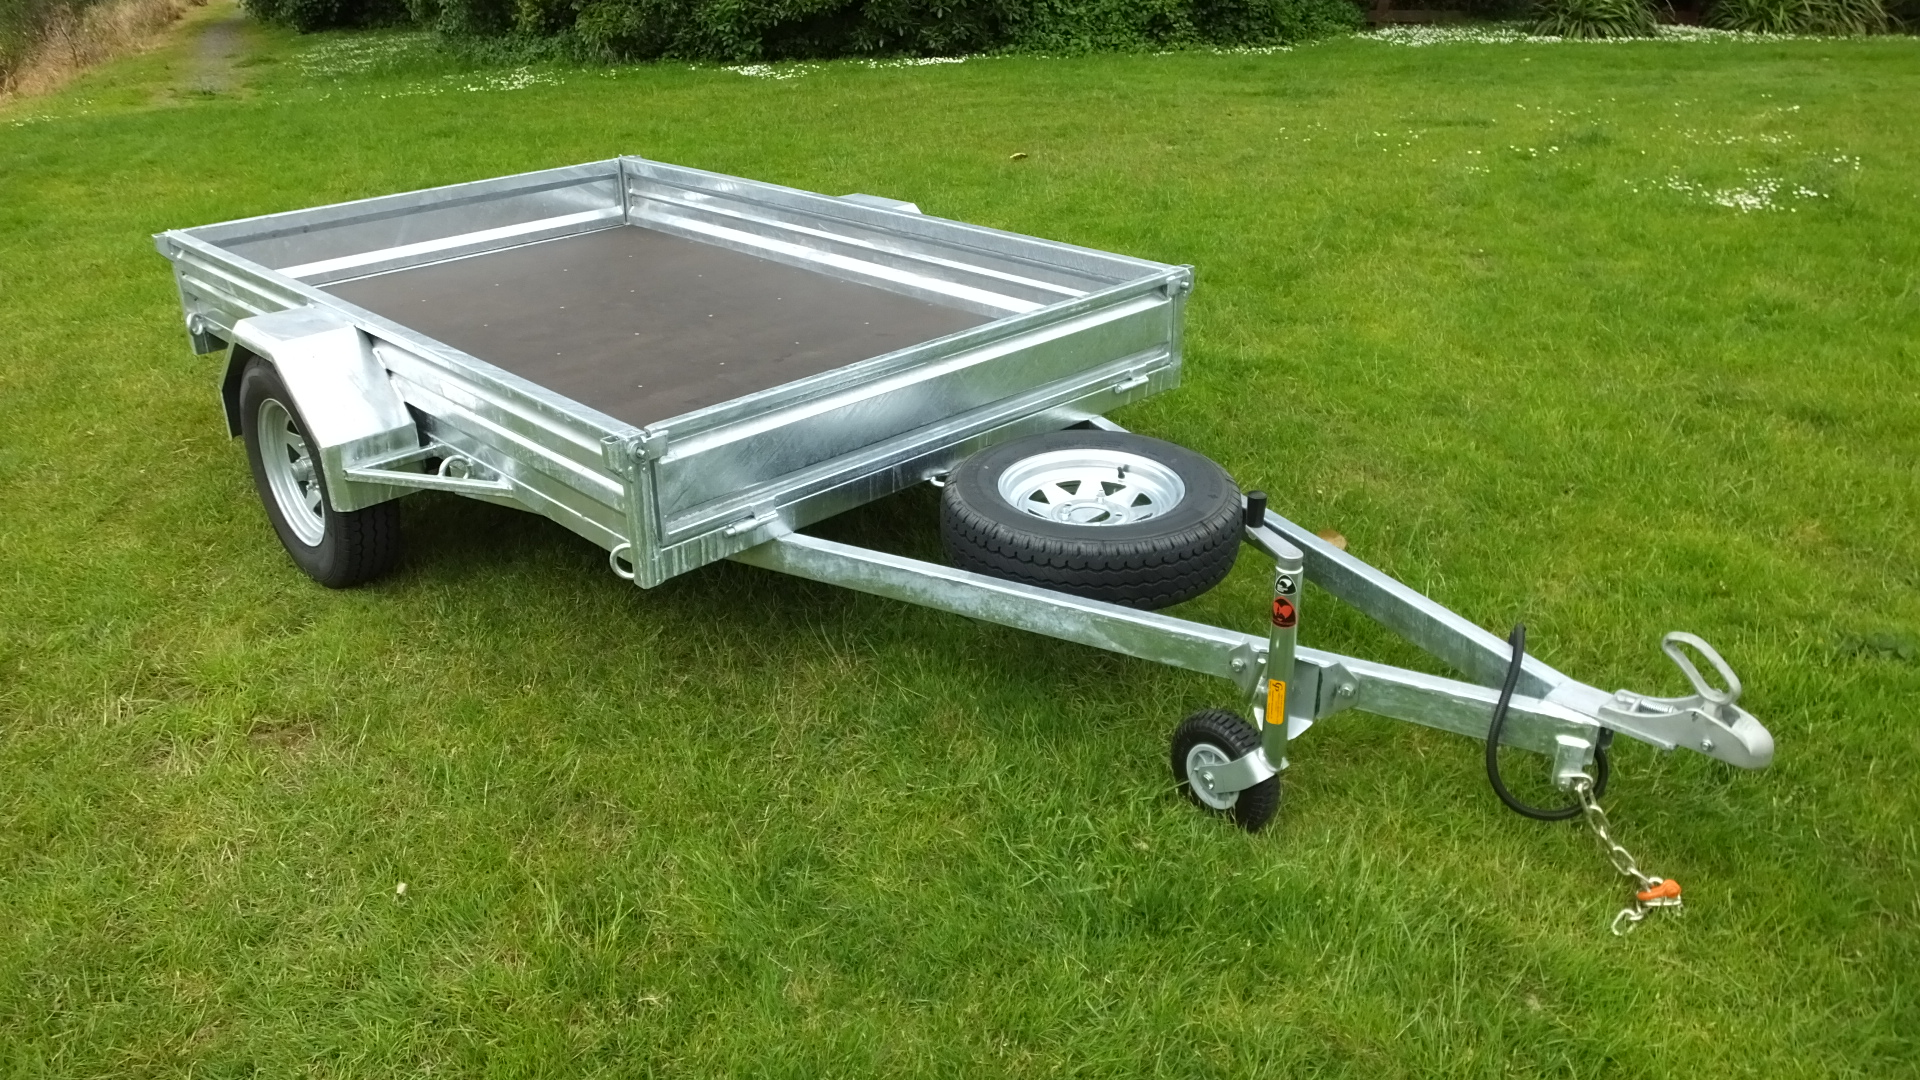 ORION 8x5 Single Axle Trailer